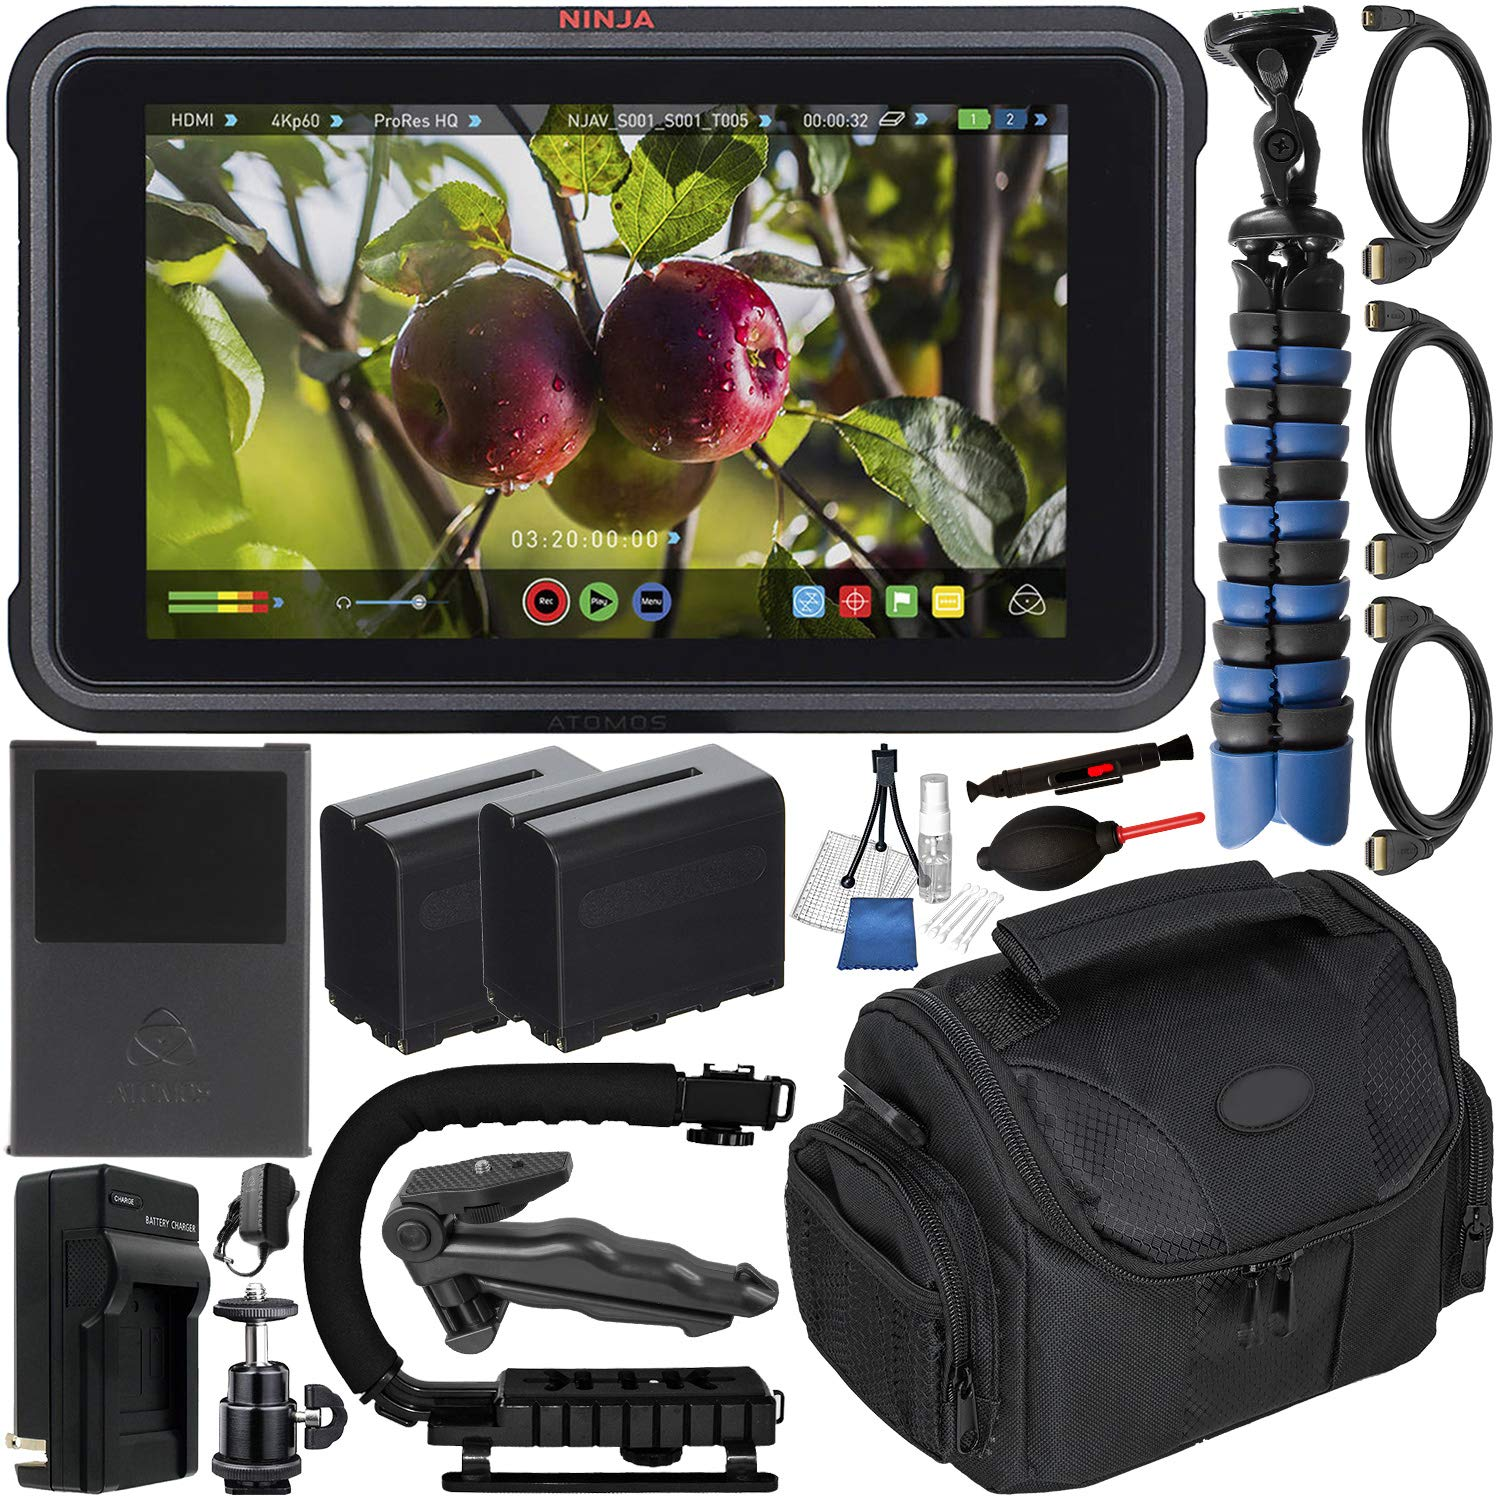 Atomos Ninja V 5'' 4K HDMI Recording Monitor with Deluxe Accessory Bundle - Includes: 2X Extended Life NP-F975 Batteries with Charger; Micro, Mini, Standard HDMI Cables; Action Grip Stabilizer & More by Atomos